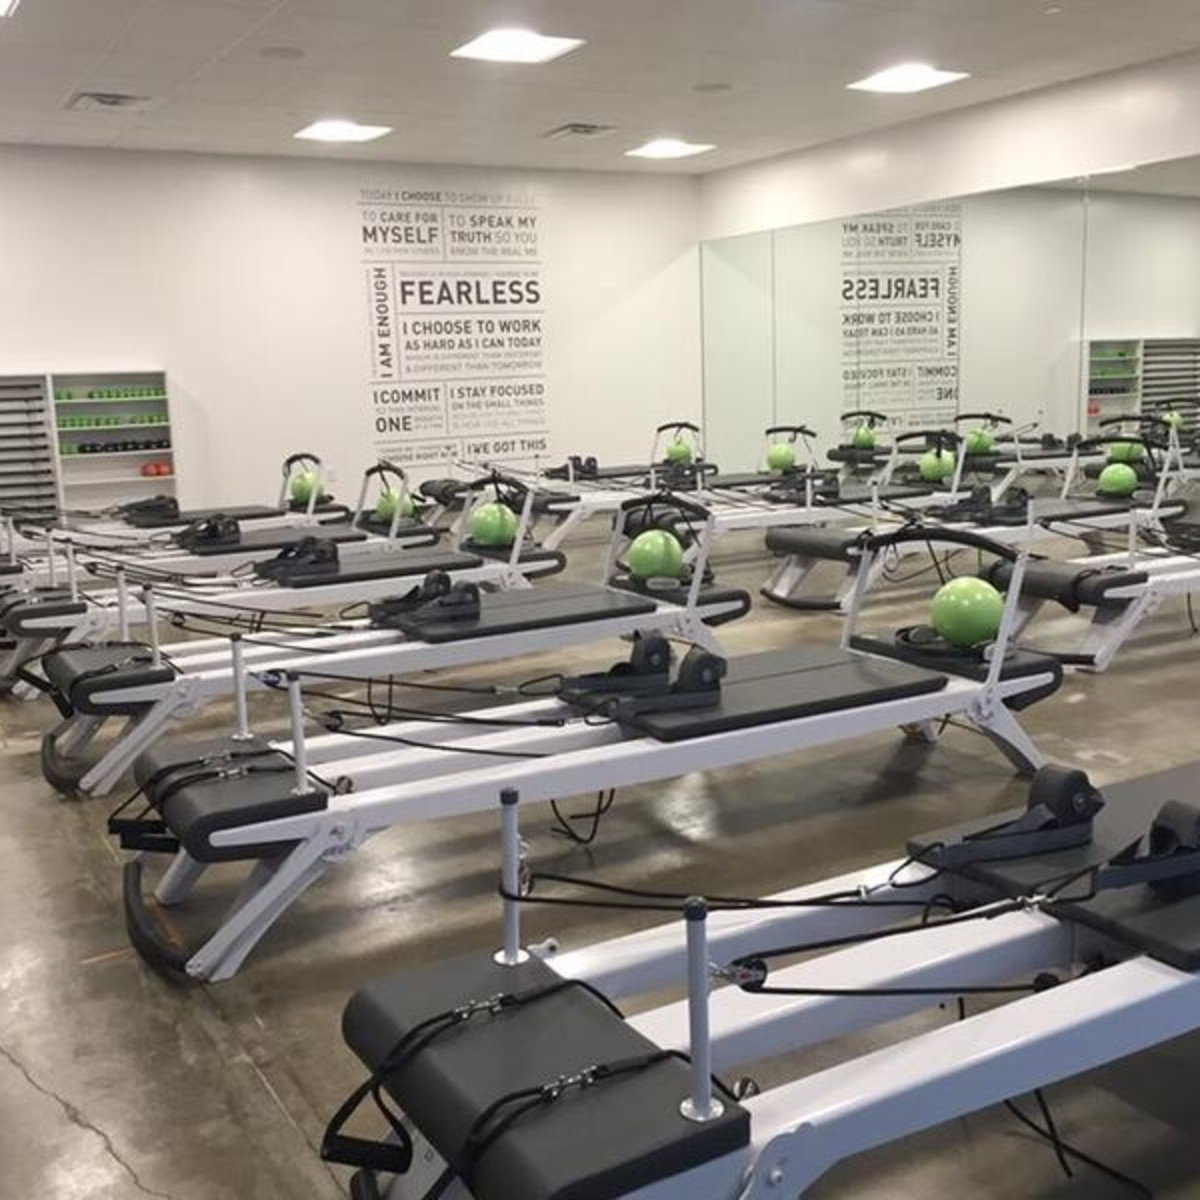 Kor180 Austin workout studio room